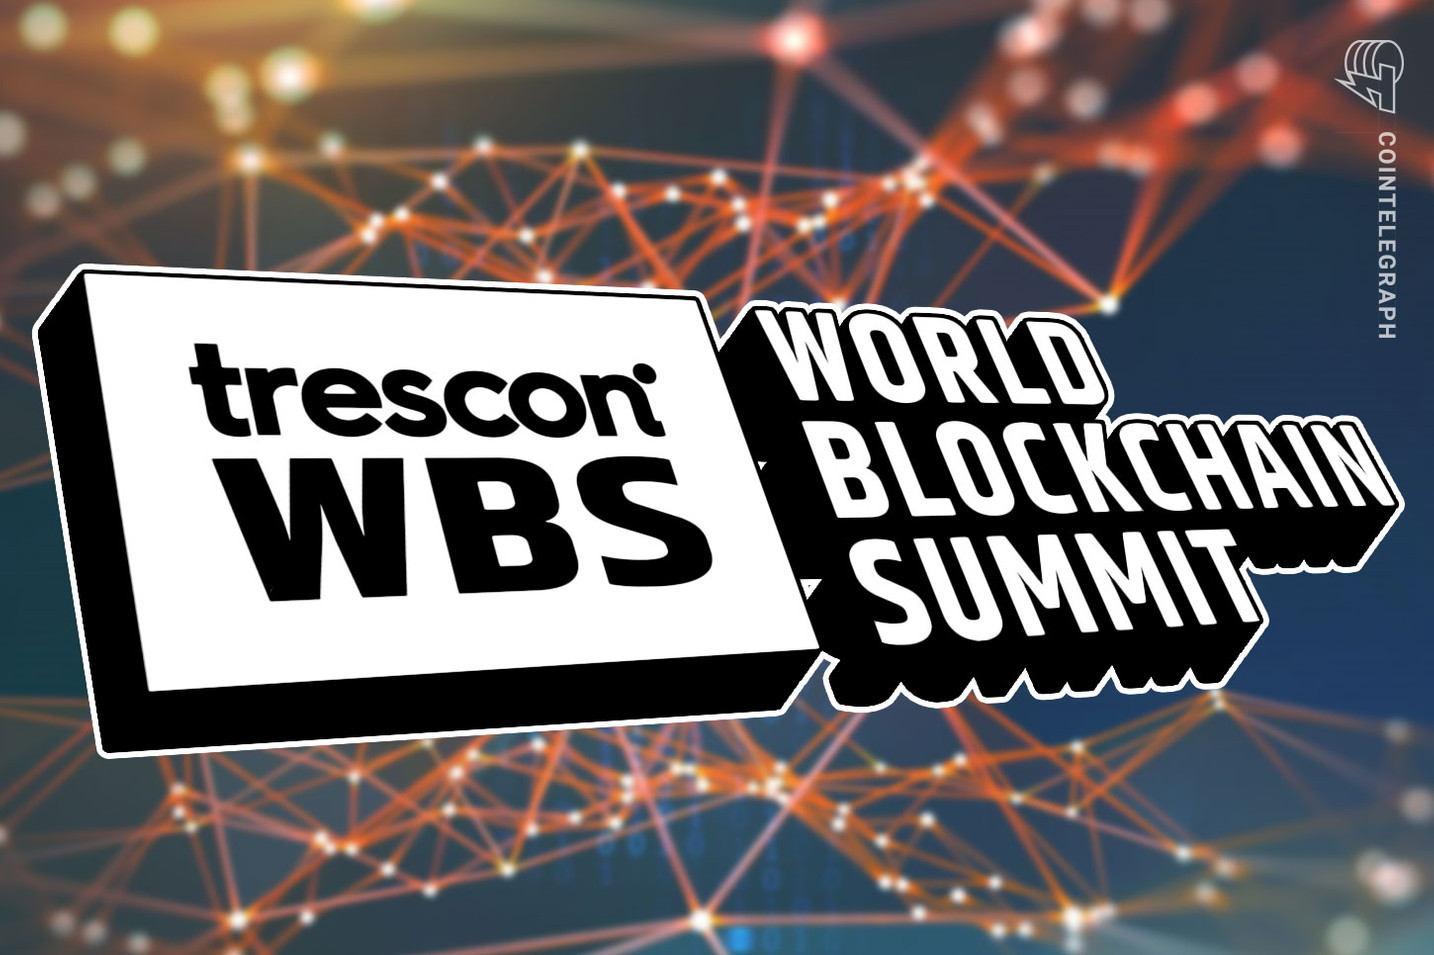 Anthony Pompliano joins World Blockchain Summit – MENA 2020